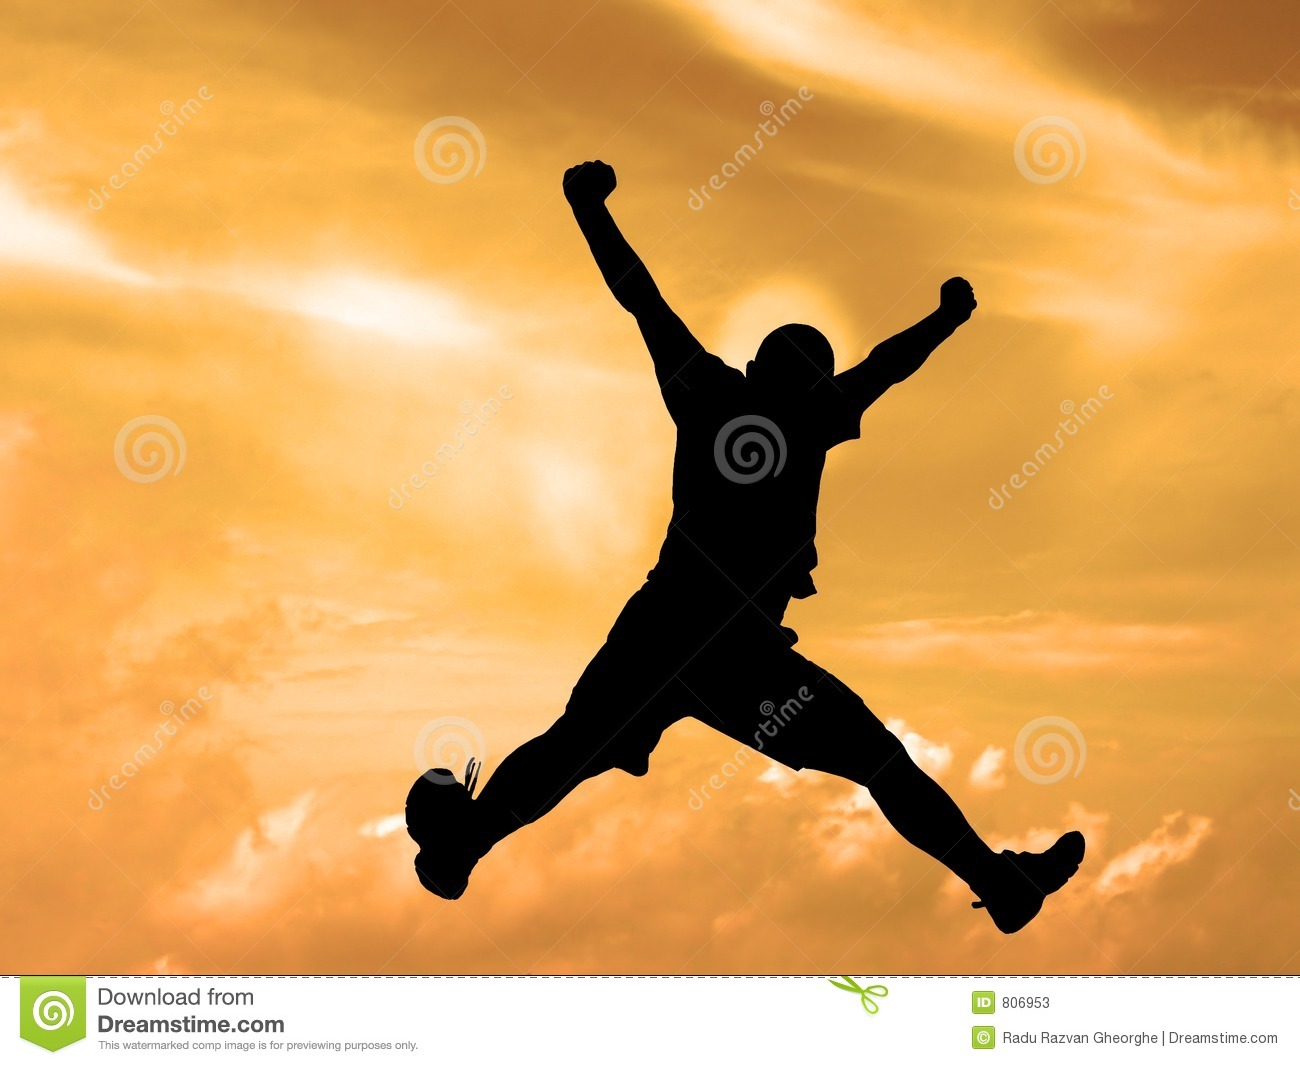 Jumping Silhouette Sunset Sky Clipping Path Stock Photos